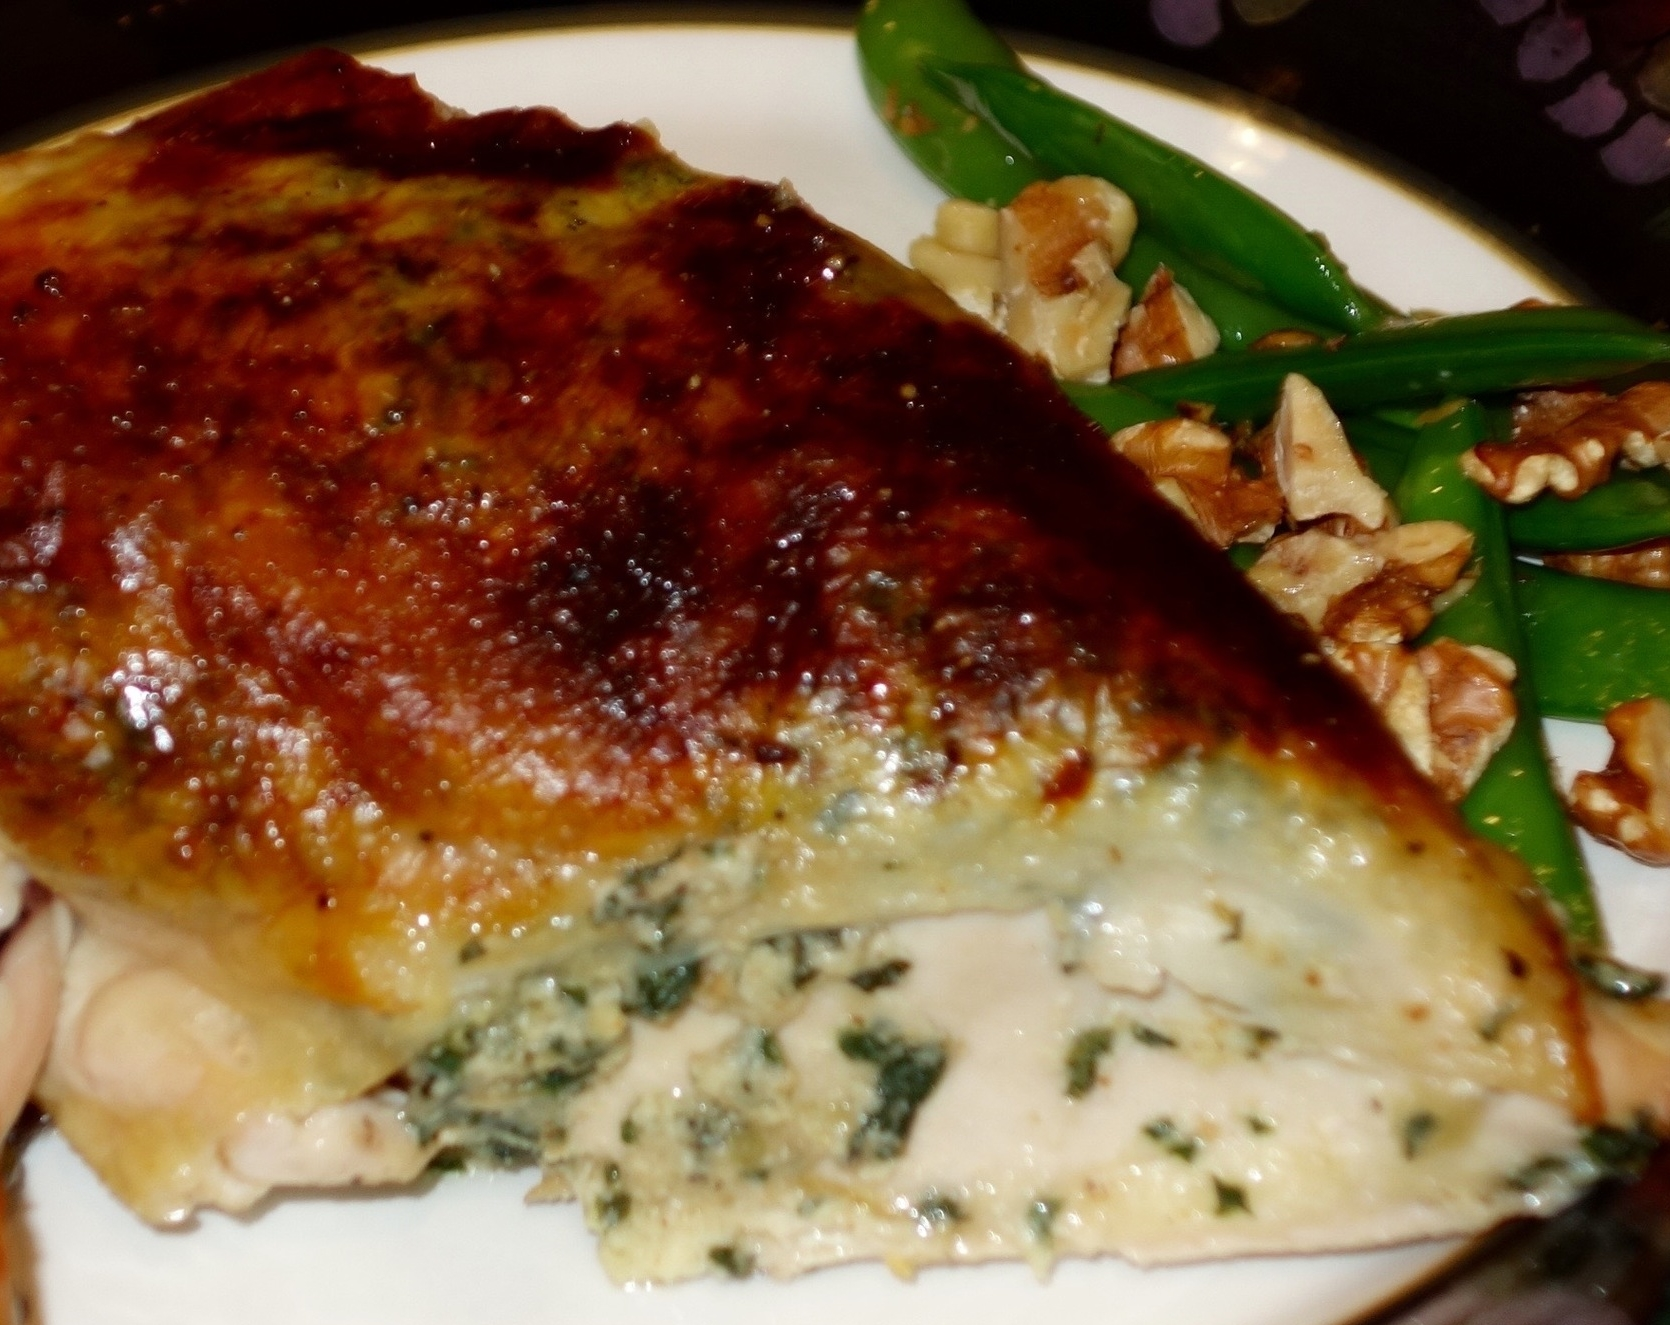 Spatchcock Chicken Stuffed with Chard, Ricotta & Basil